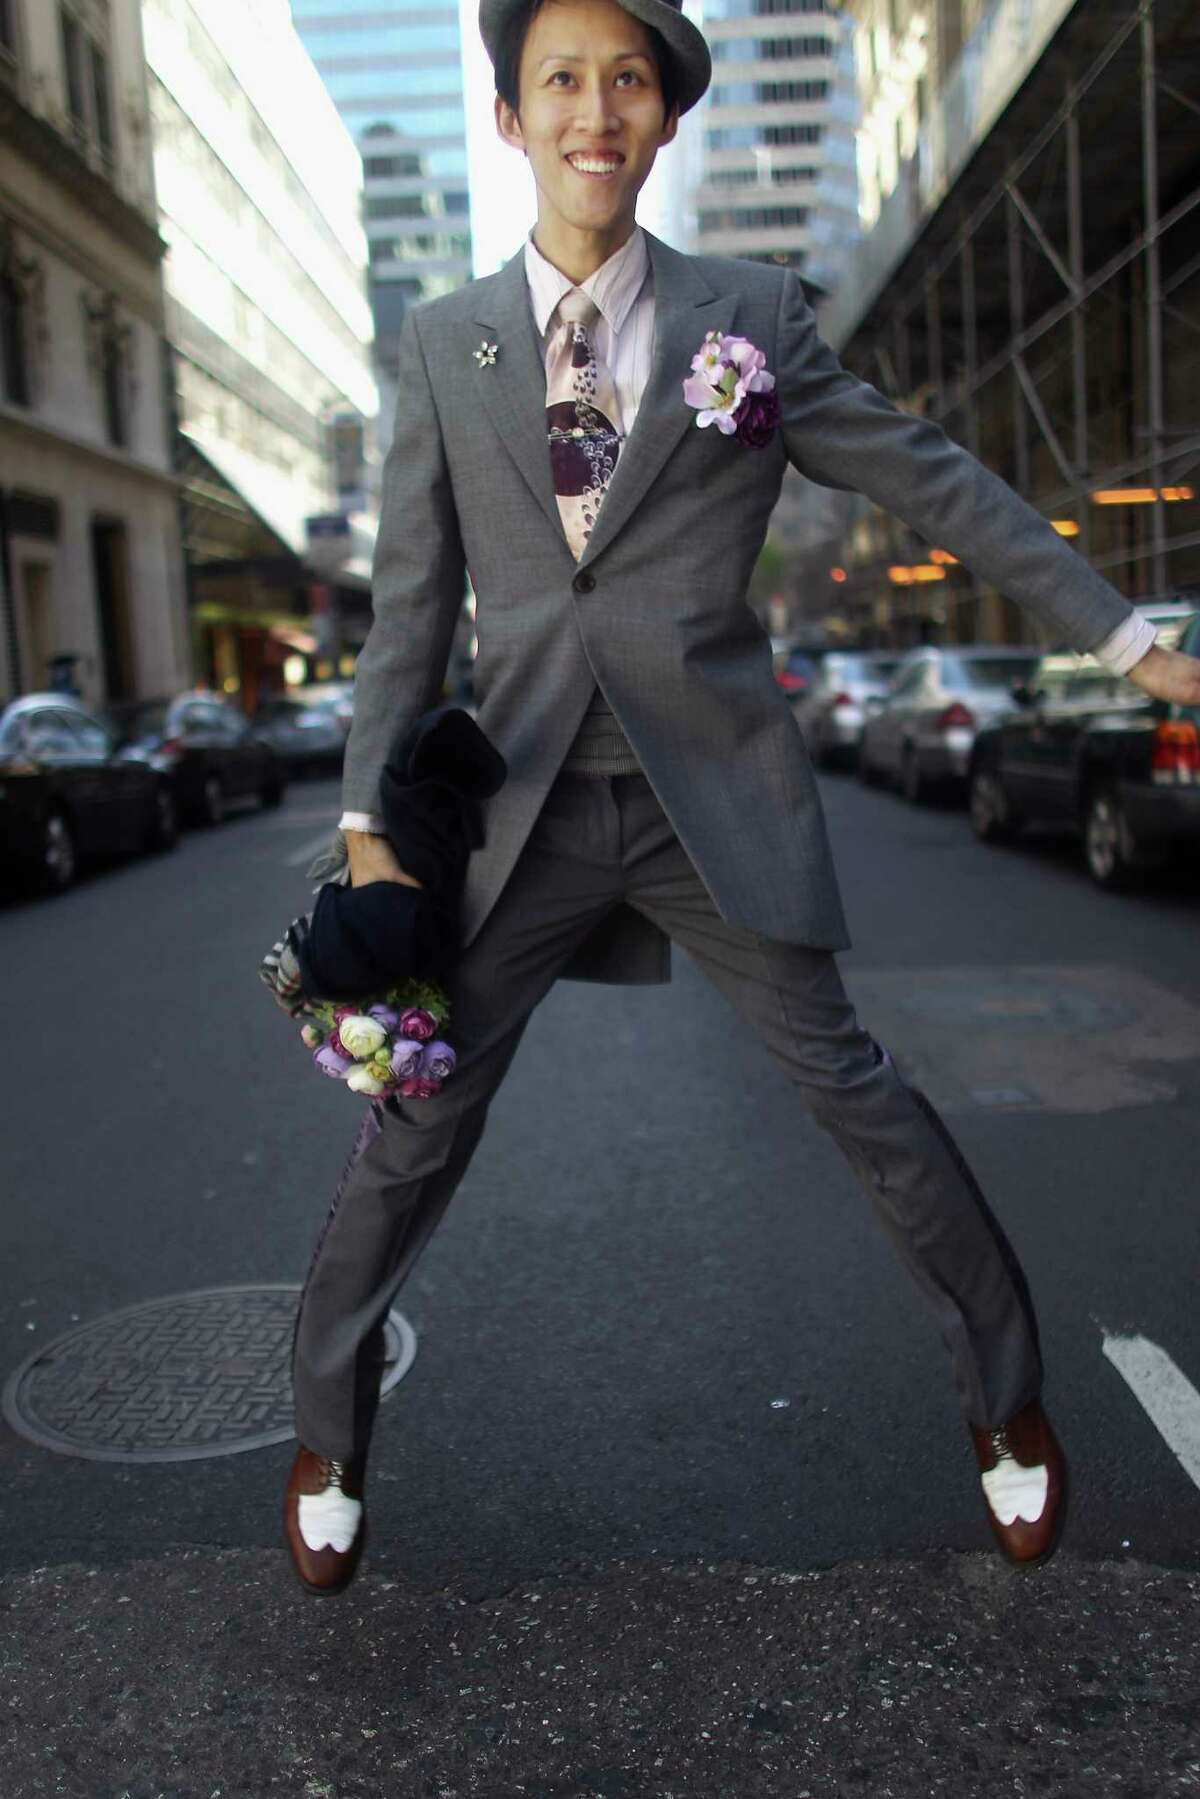 NEW YORK, NY - APRIL 08: Voon Chew jumps while posing in his holiday finery during the annual Easter Parade on April 8, 2012 in New York City. The parade is a New York tradition dating back to the mid-1800s when the social elite would parade their new fashions down Fifth Avenue after attending Easter services in one of the Fifth Avenue churches.